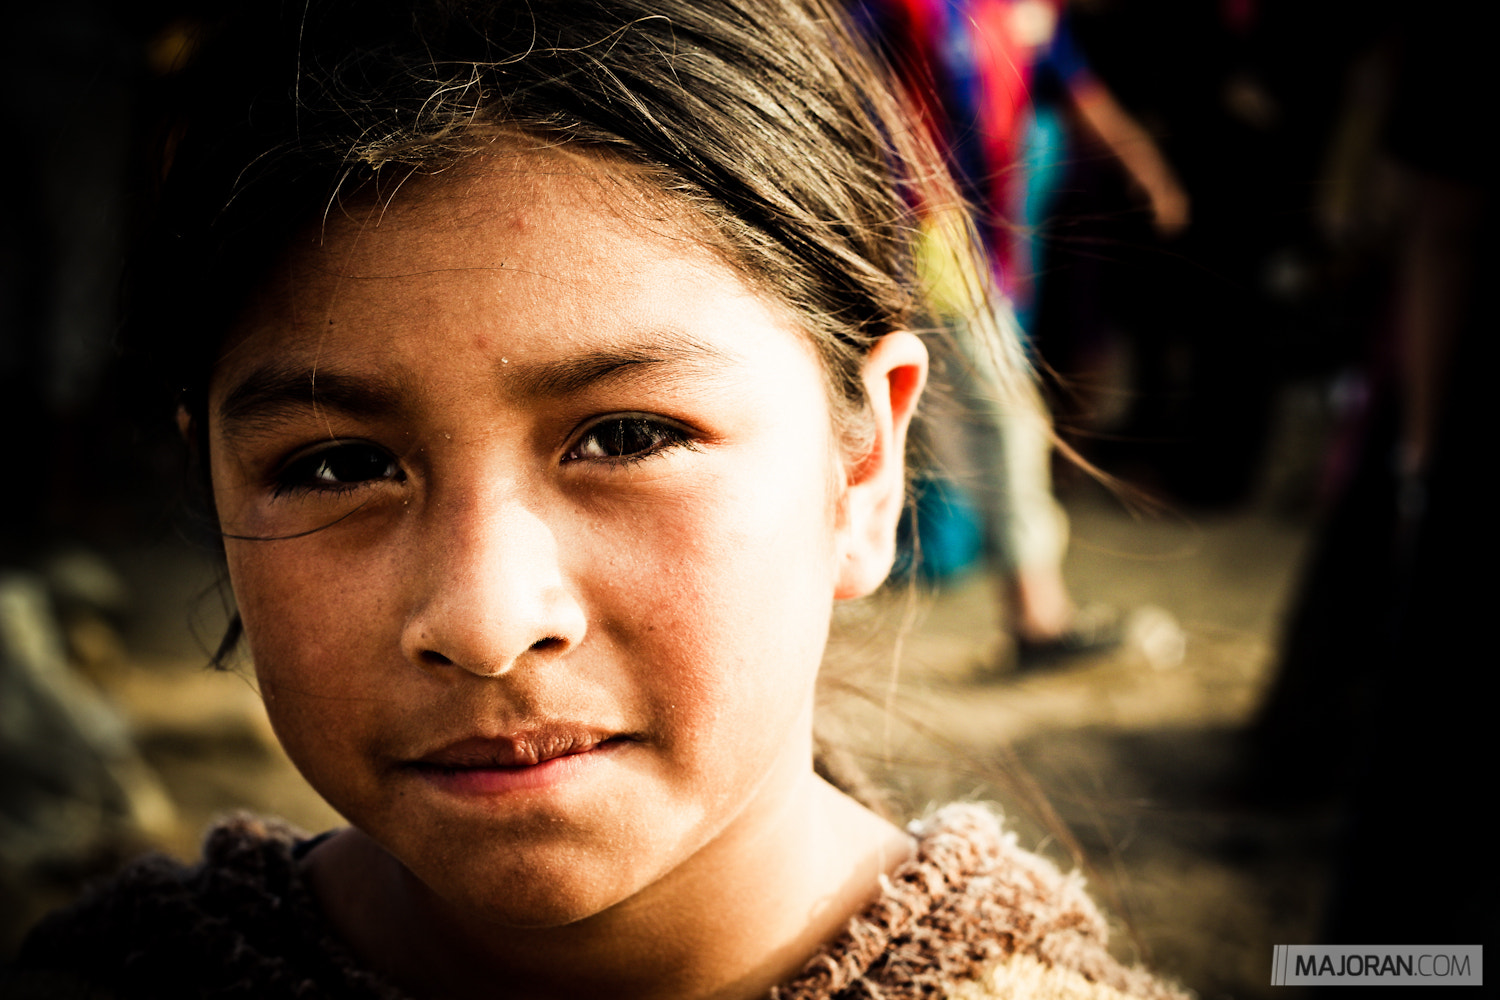 Photograph Girl from the Dump by Ray Majoran on 500px